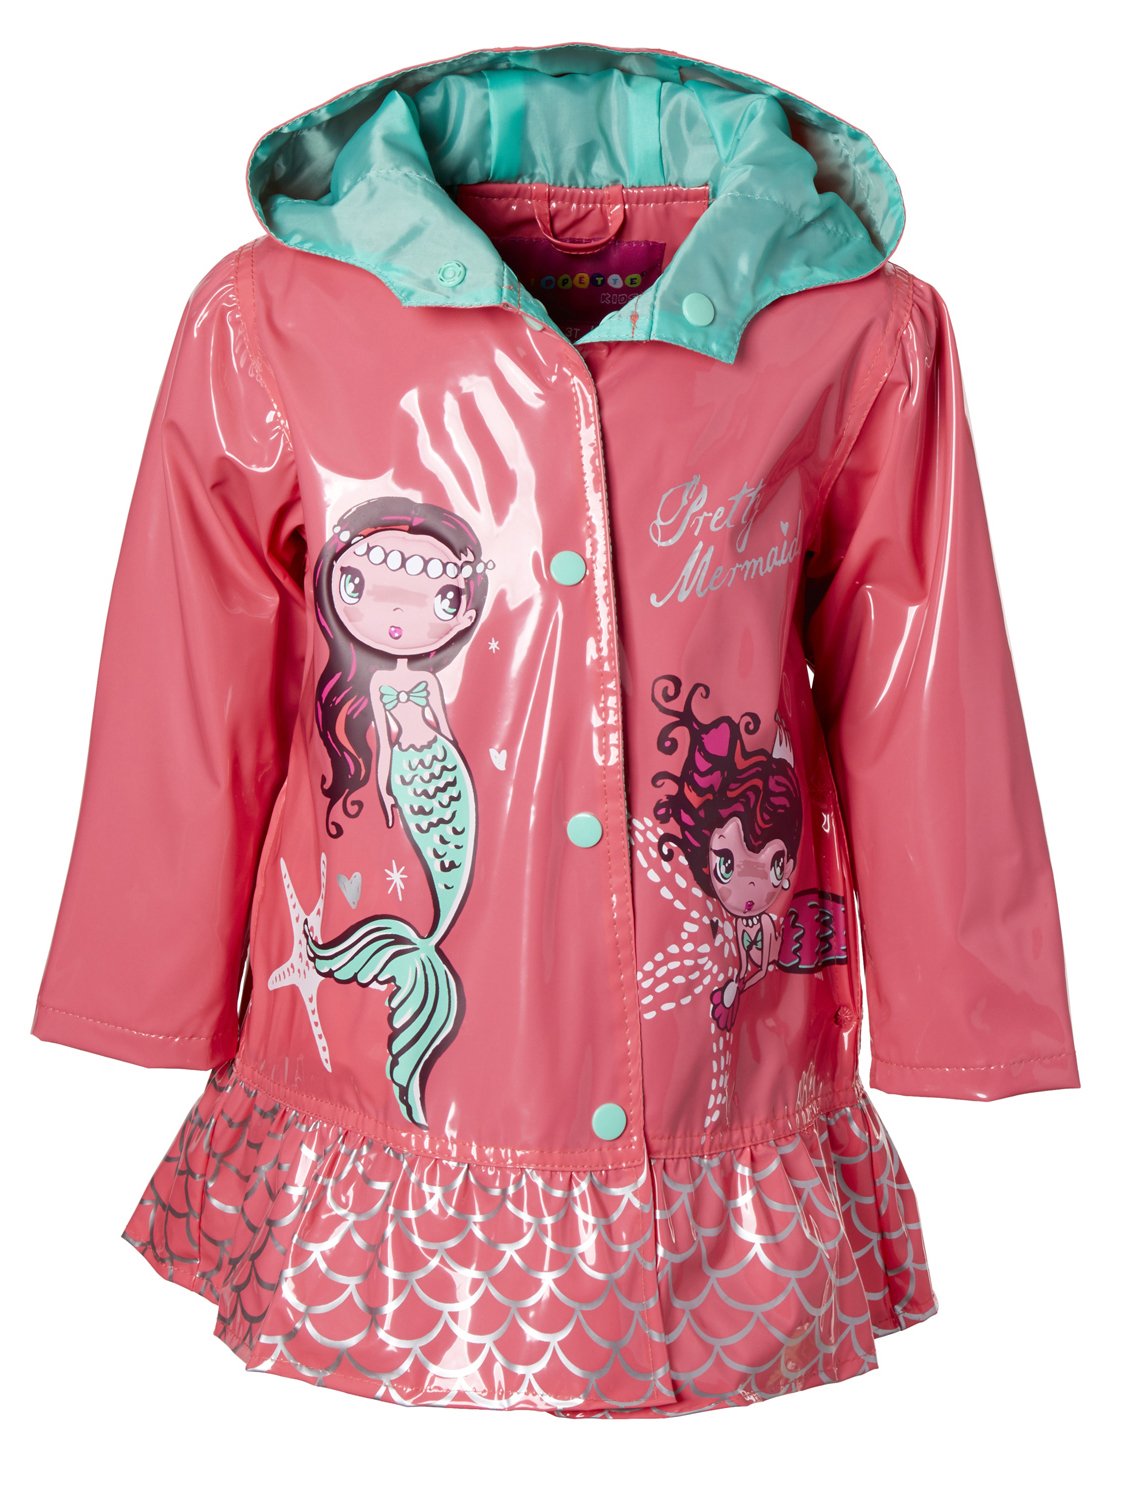 Doc McStuffins Toddler Girl Hooded Jacket Hoodie /& Pants Outfit Set New 5T